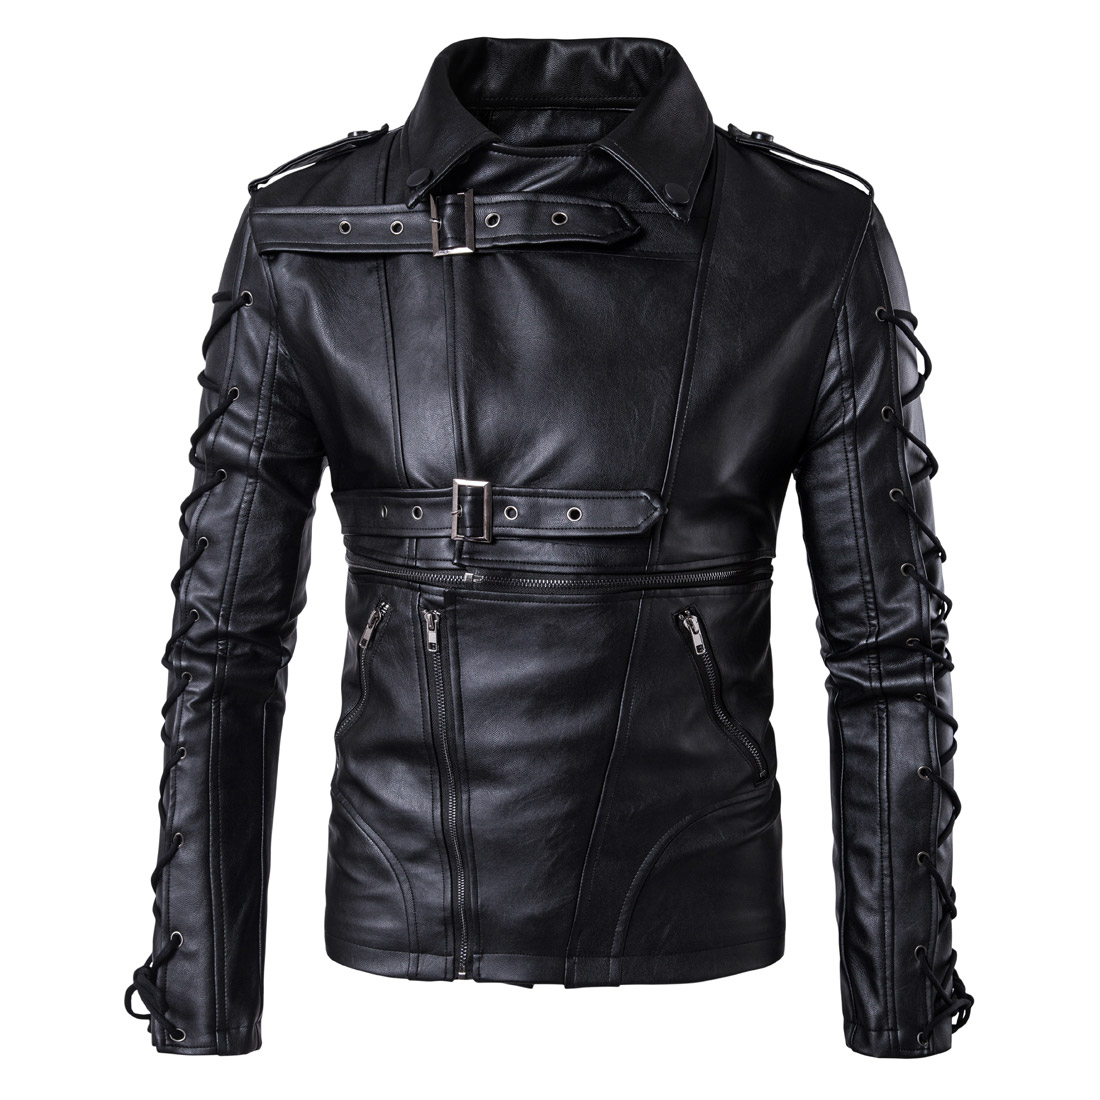 2018 Spring Autumn Mens Leather Jackets High-end Motorcycle Leather Jacket Men Fashion Casual Tied Rope Black Leather Coat Men